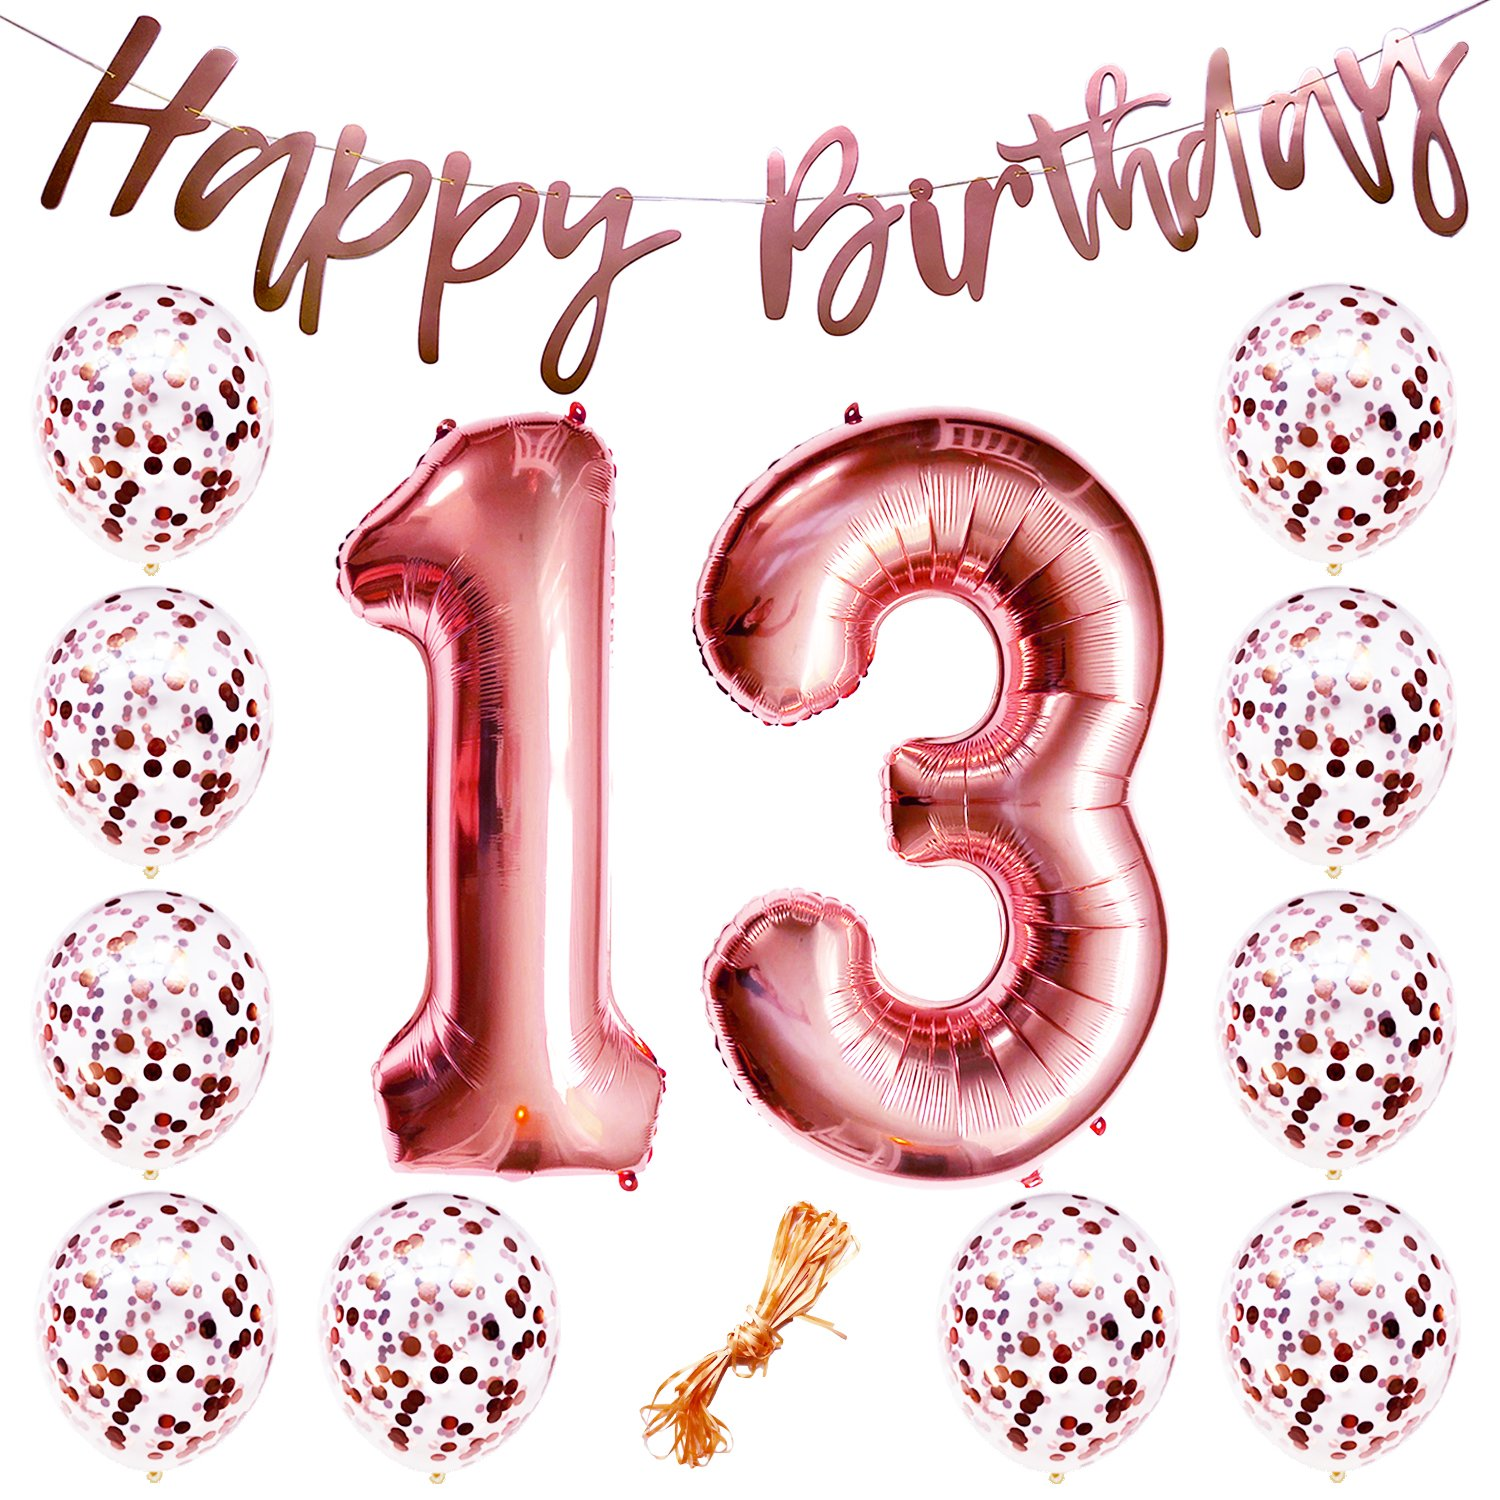 """13th Birthday Party Decorations Rose Gold Decor Strung Banner (HAPPY BIRTHDAY) & 12PC Helium Balloons w/Ribbon [Huge Numbers """"13"""", Confetti] Kit Set Supplies 